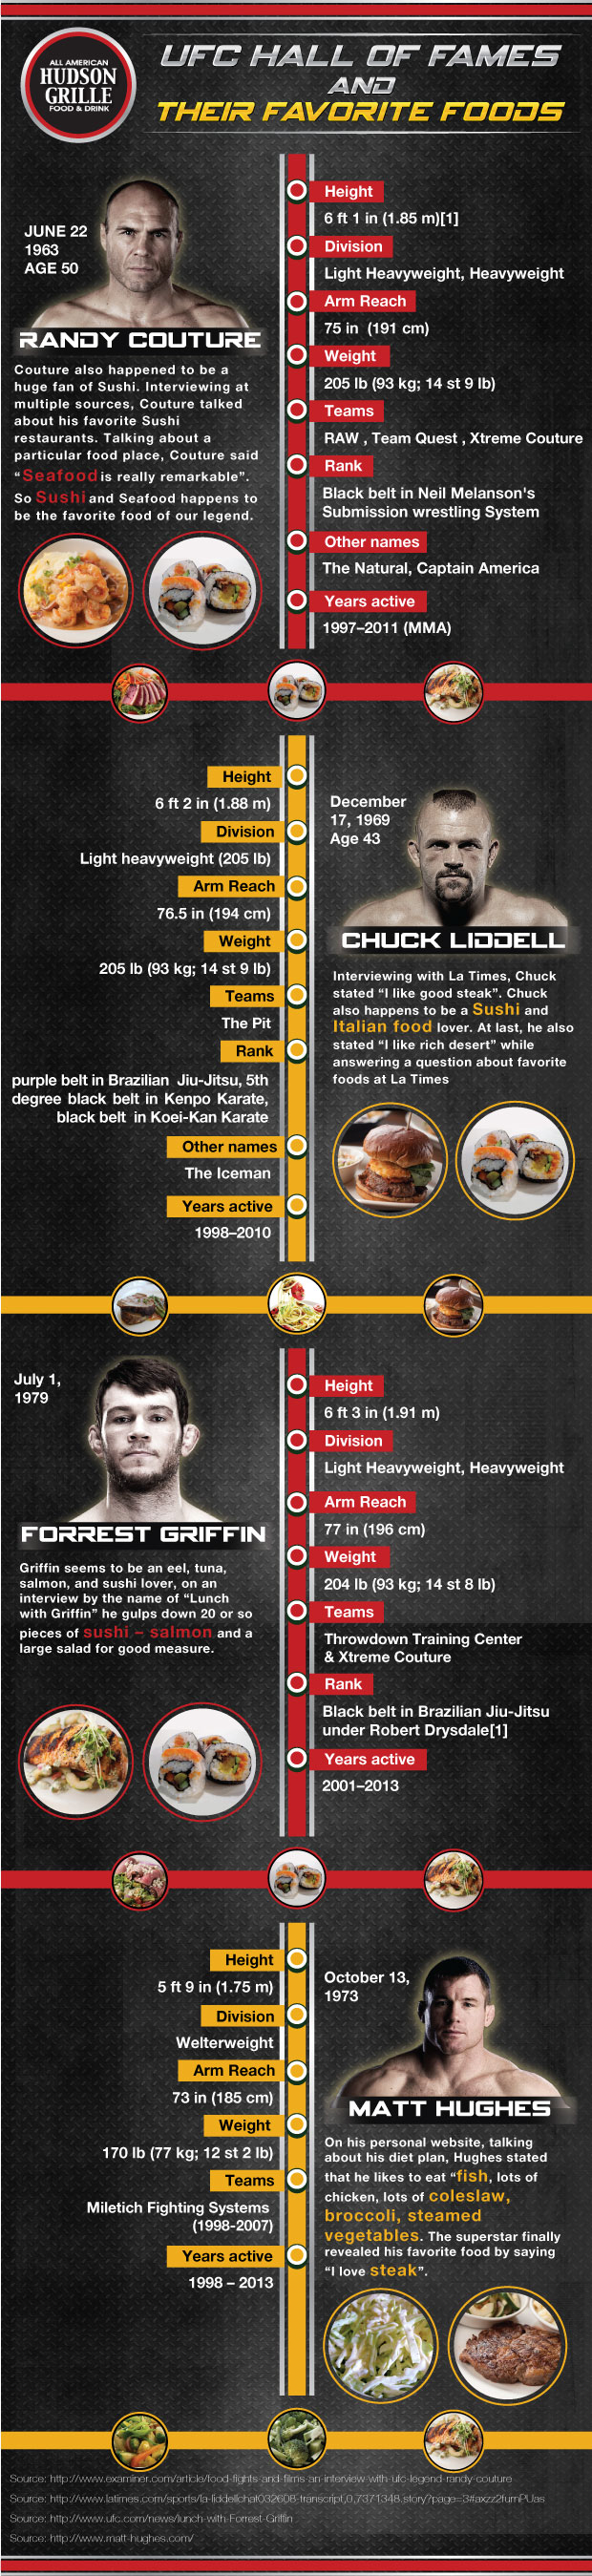 ufc-hall-of-fame-and-their-favorite-food_525704e398260